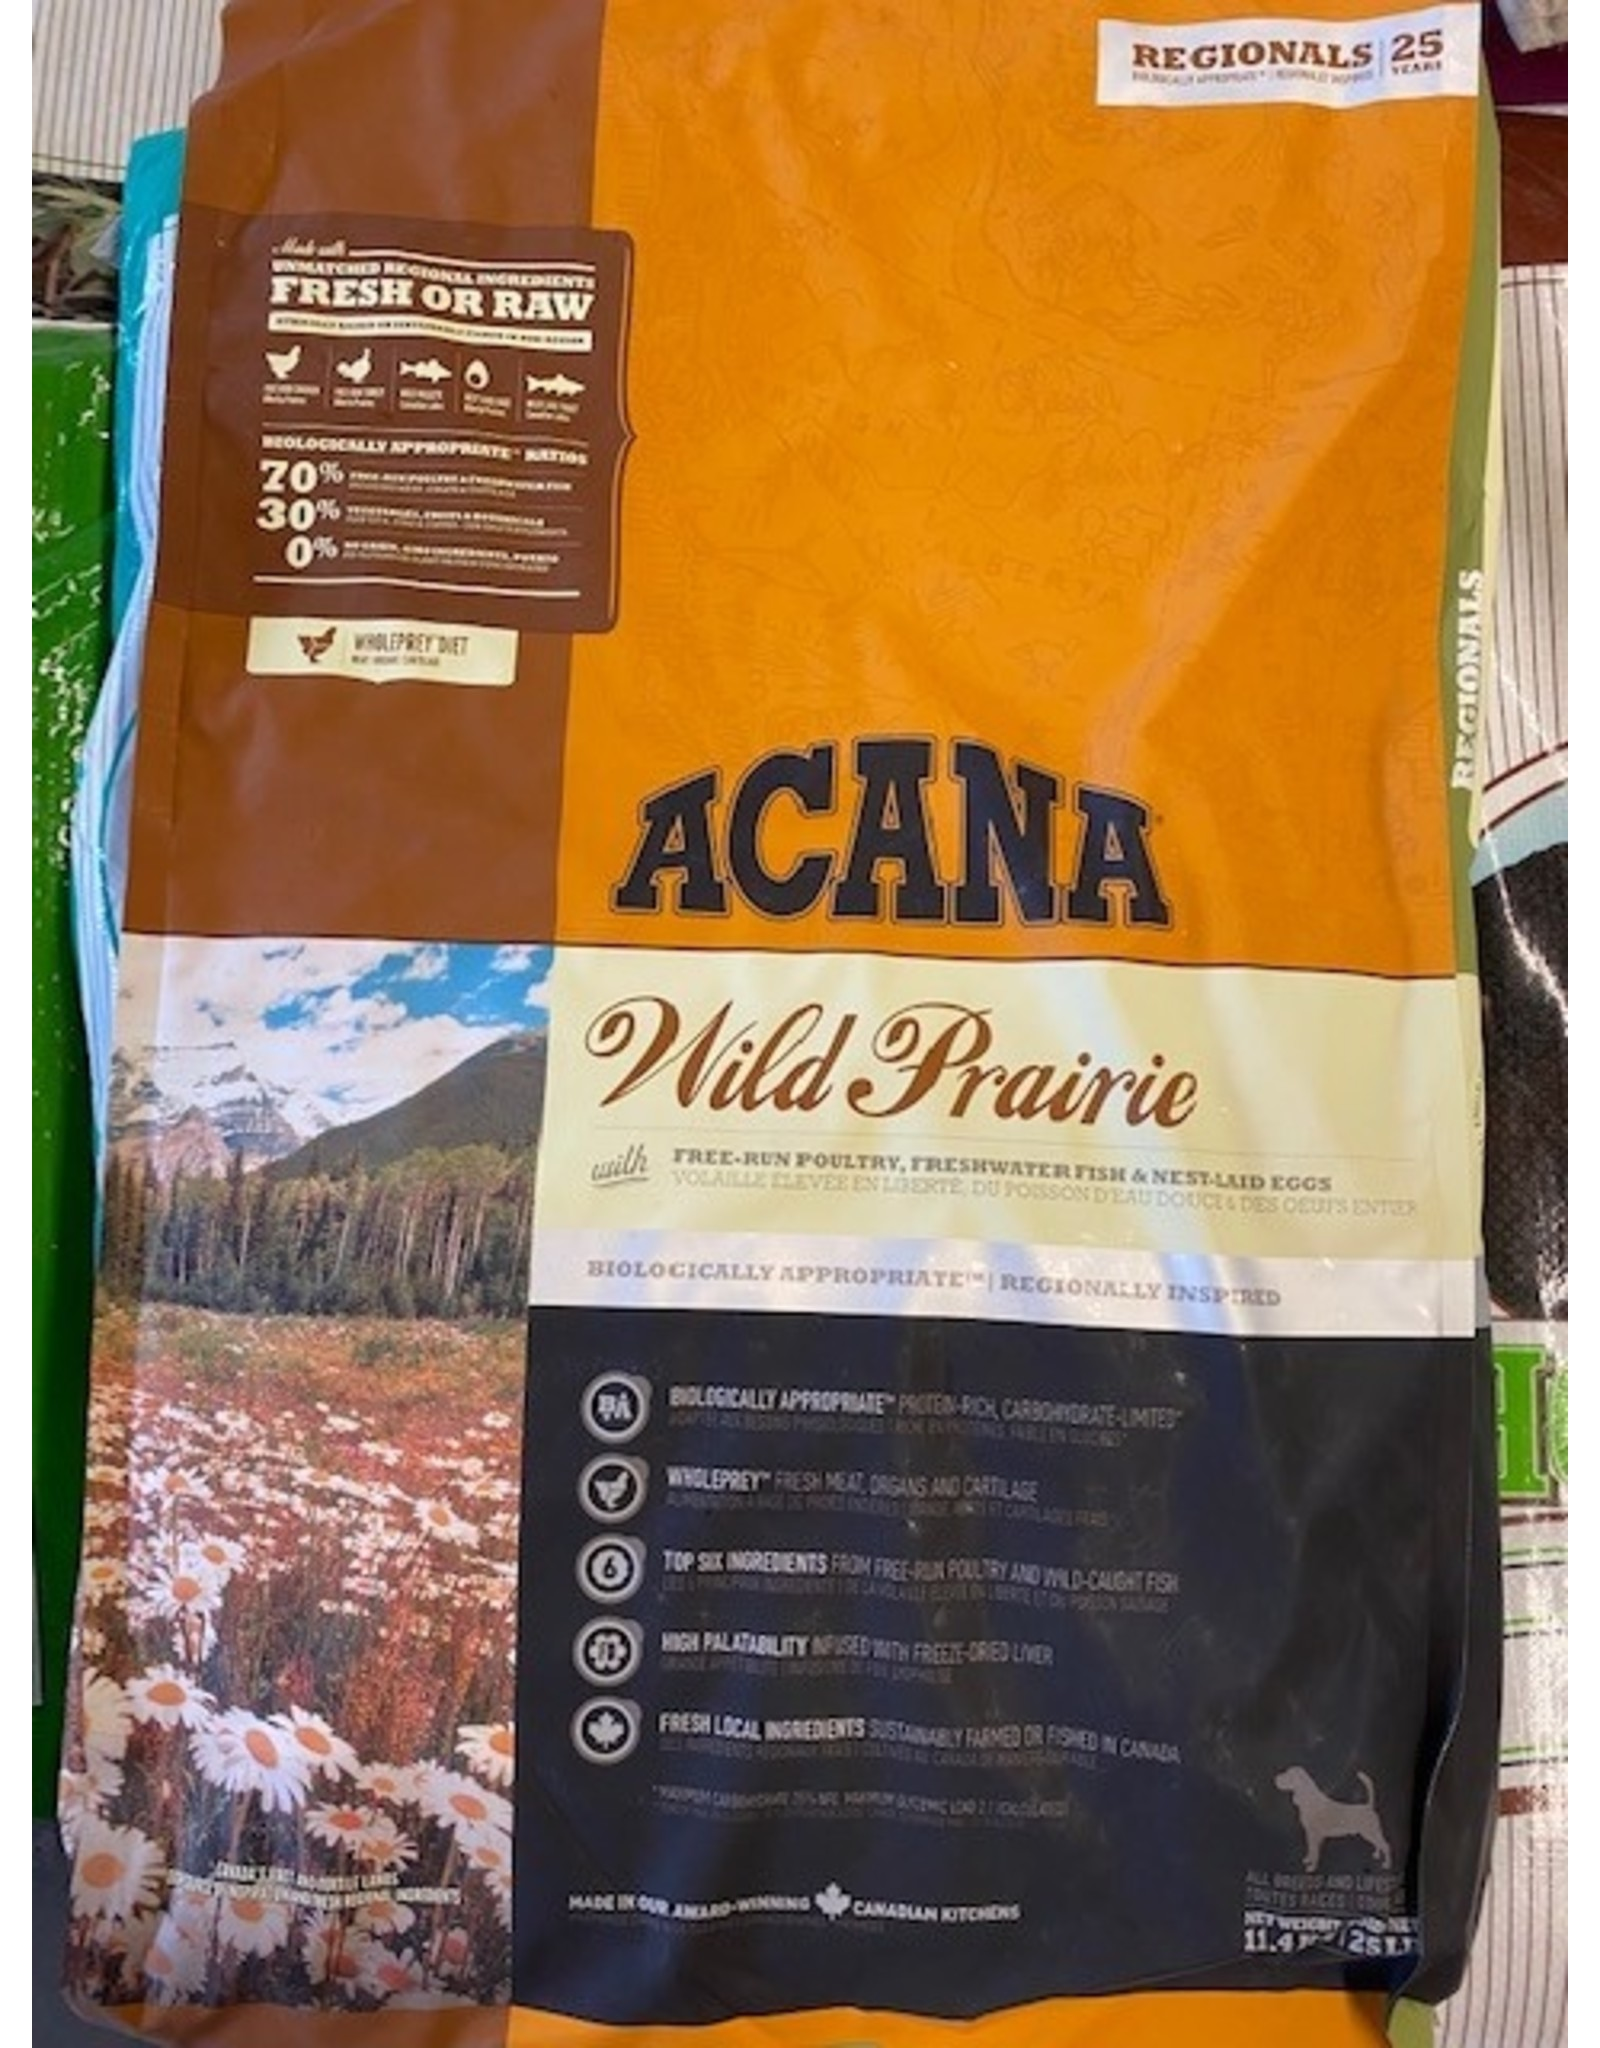 ACANA* WILD PRAIRIE-Poultry, Fish, Egg-25lbs (Orange/Red Bag) All Breed and Life Stages